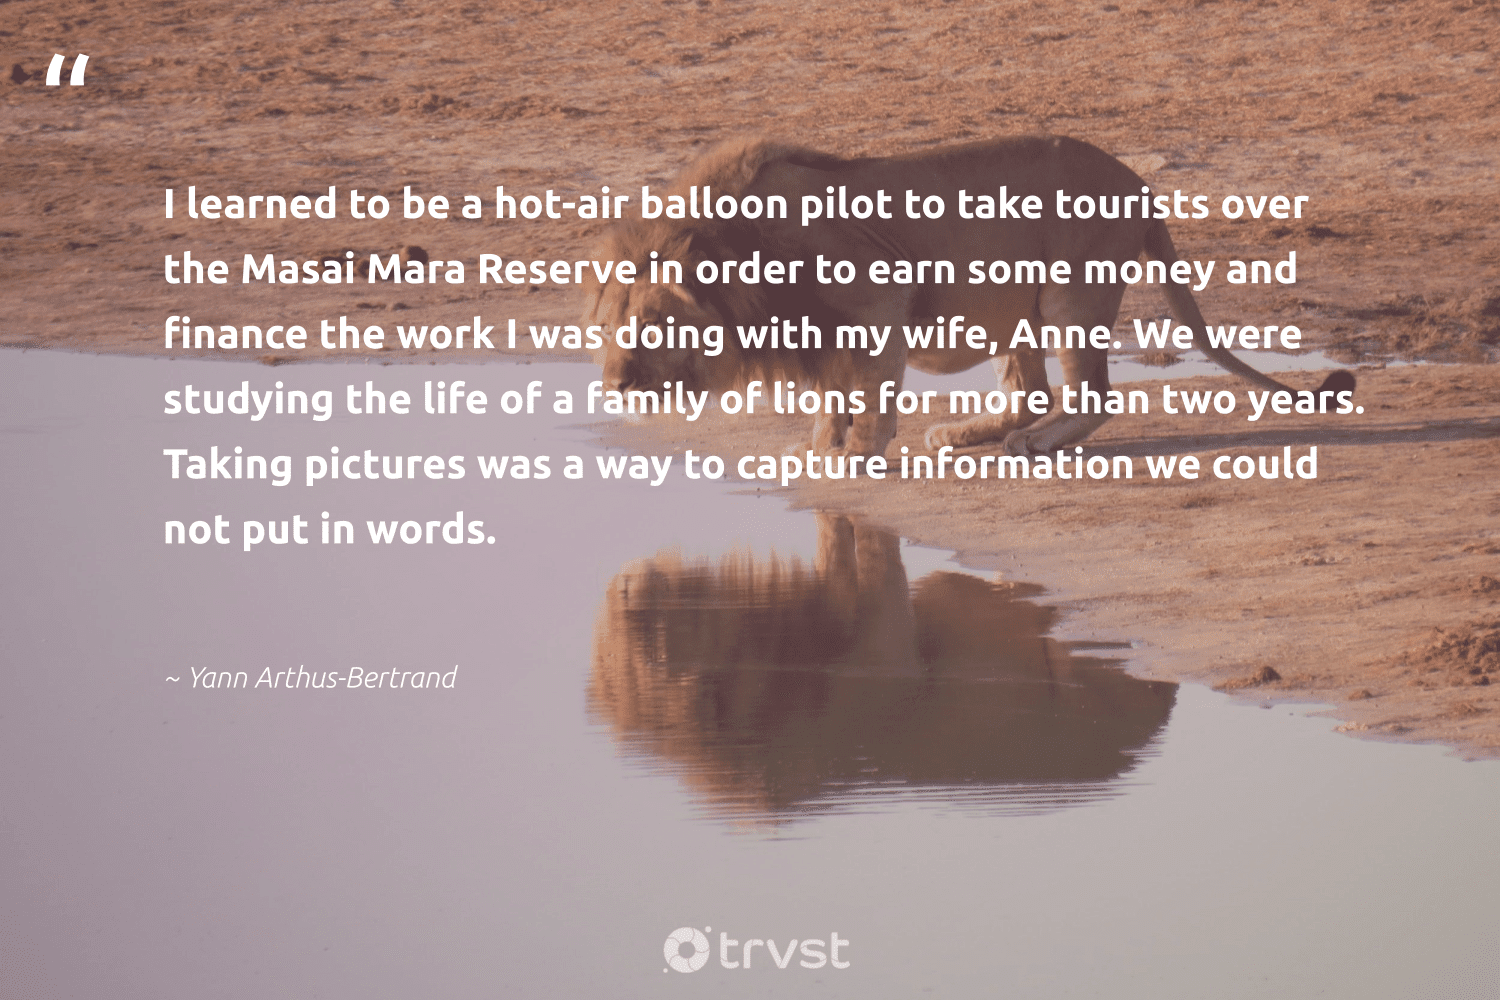 """""""I learned to be a hot-air balloon pilot to take tourists over the Masai Mara Reserve in order to earn some money and finance the work I was doing with my wife, Anne. We were studying the life of a family of lions for more than two years. Taking pictures was a way to capture information we could not put in words.""""  - Yann Arthus-Bertrand #trvst #quotes #family #lions #bigcats #beinspired #lion #takeaction #nature #bethechange #perfectnature #socialchange"""